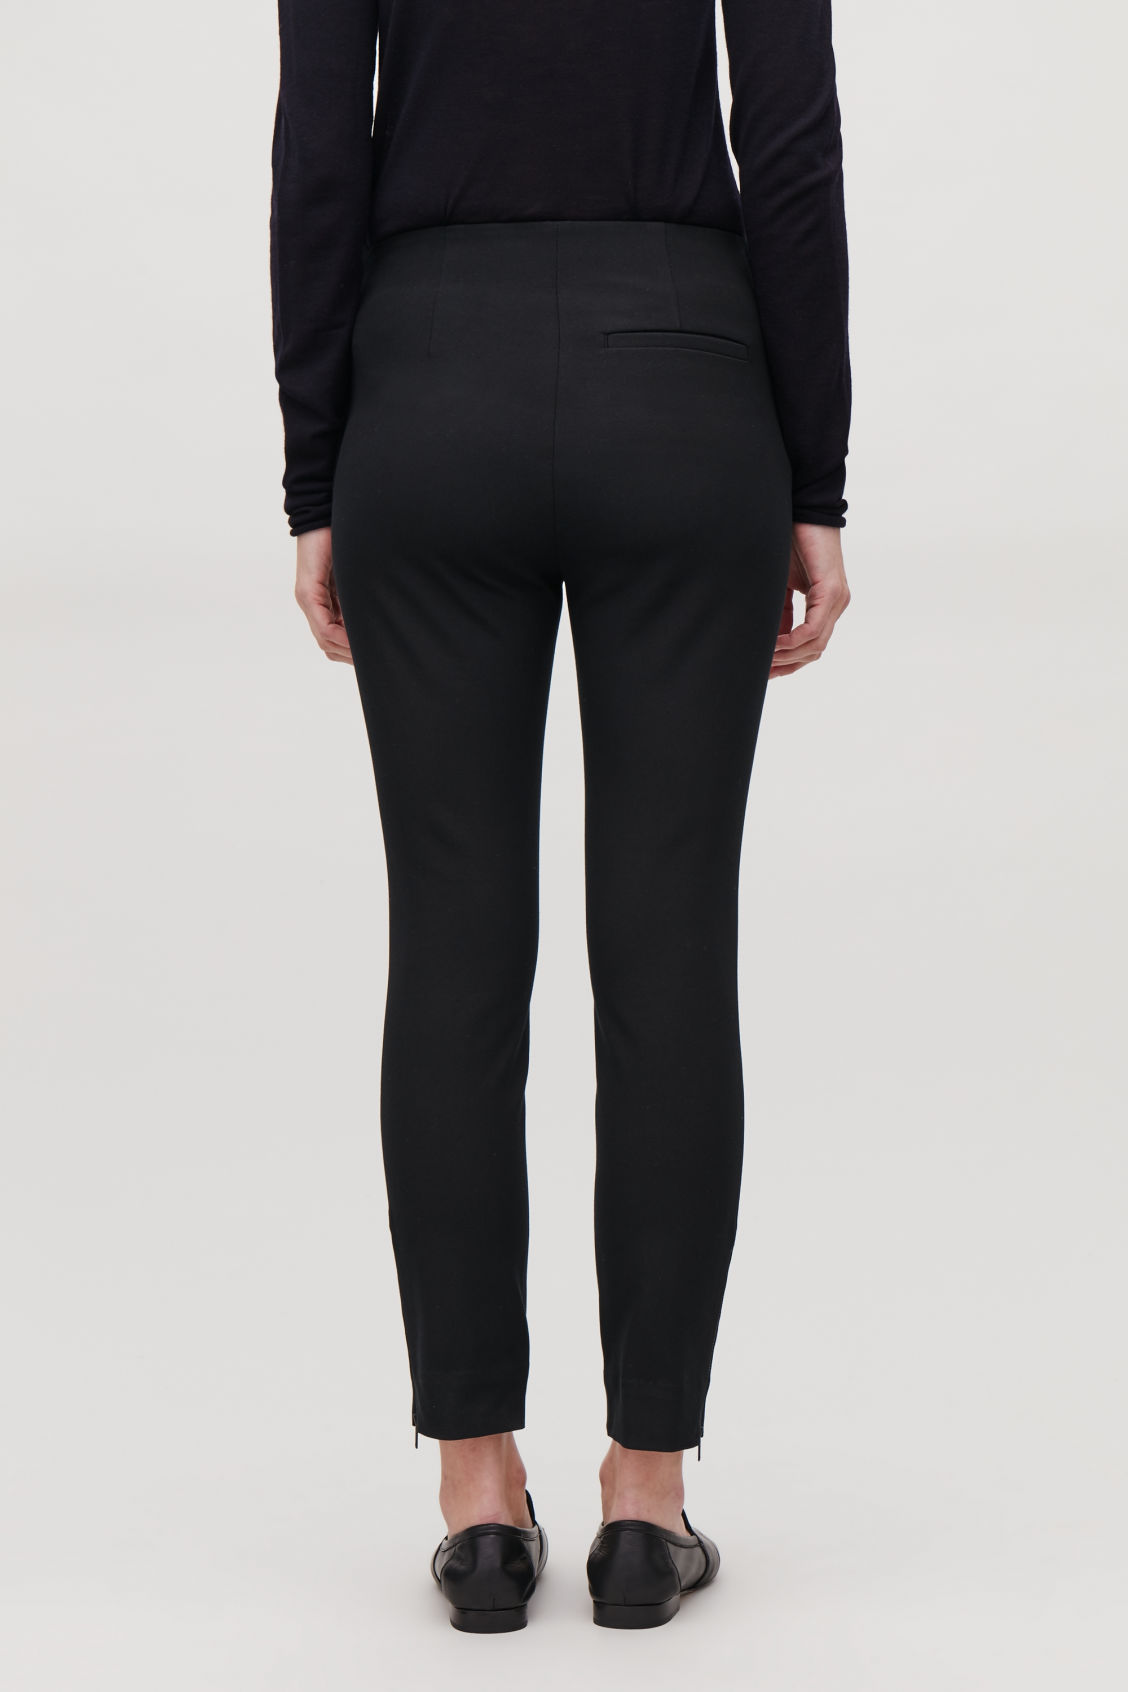 Model side image of Cos skinny legging trousers in black